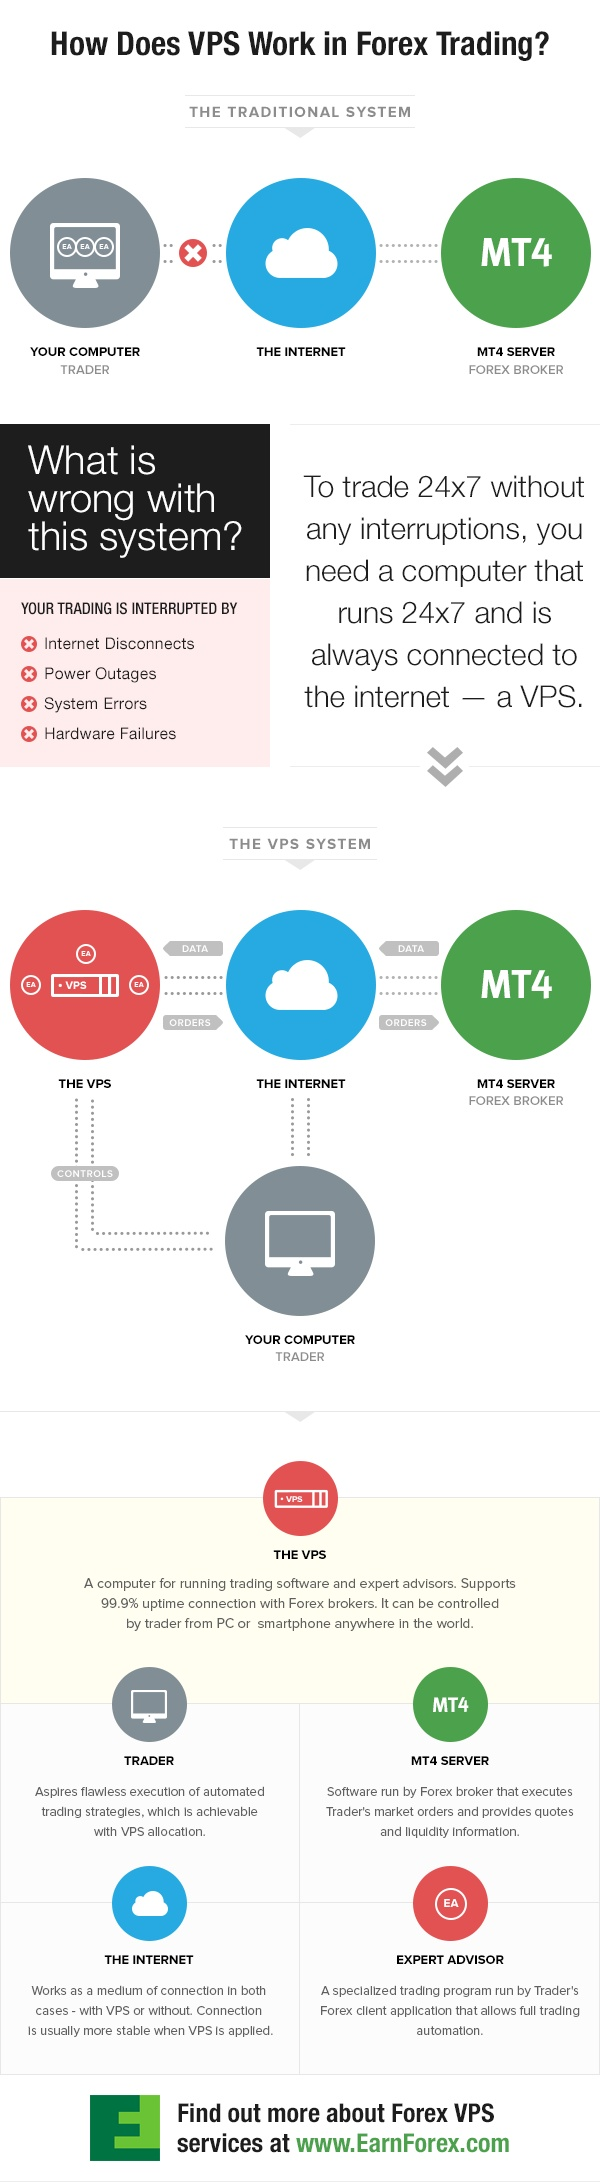 How VPS works in MT4 trading